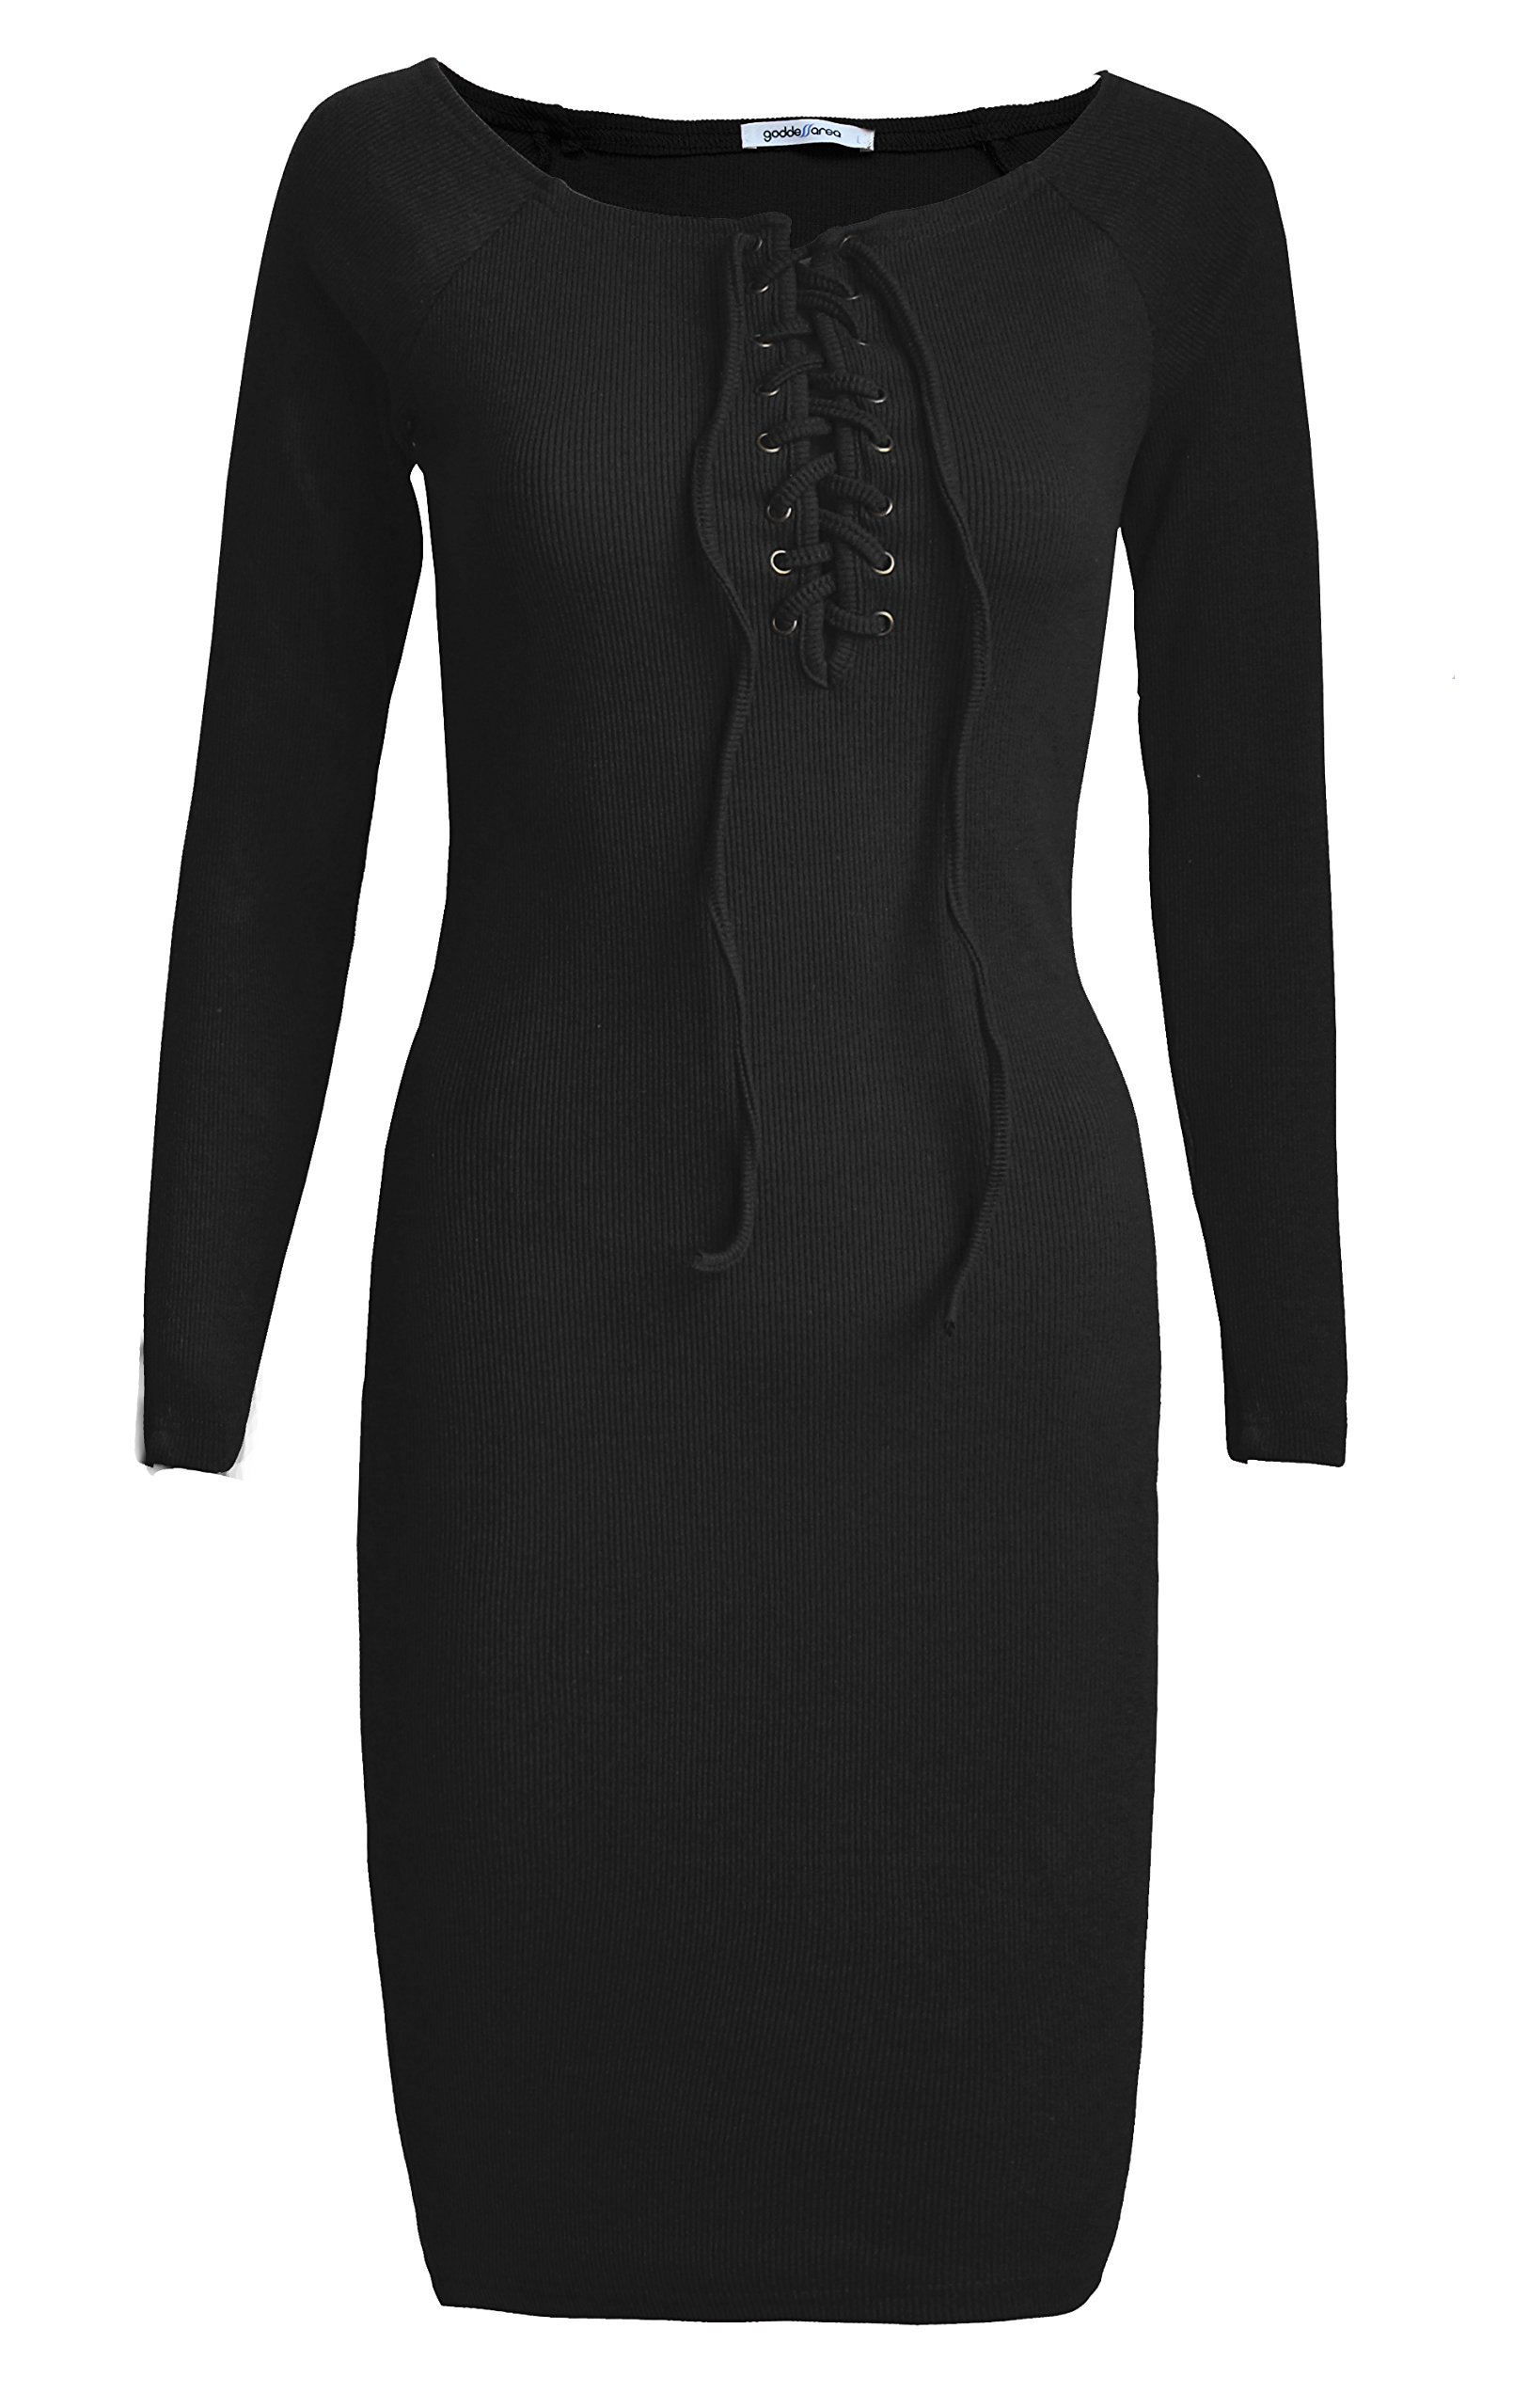 Goddess Area Women\'s Classic Slim Fit Long Sleeve Bodycon Midi Pencil Sweater Dress (A1, Black1)